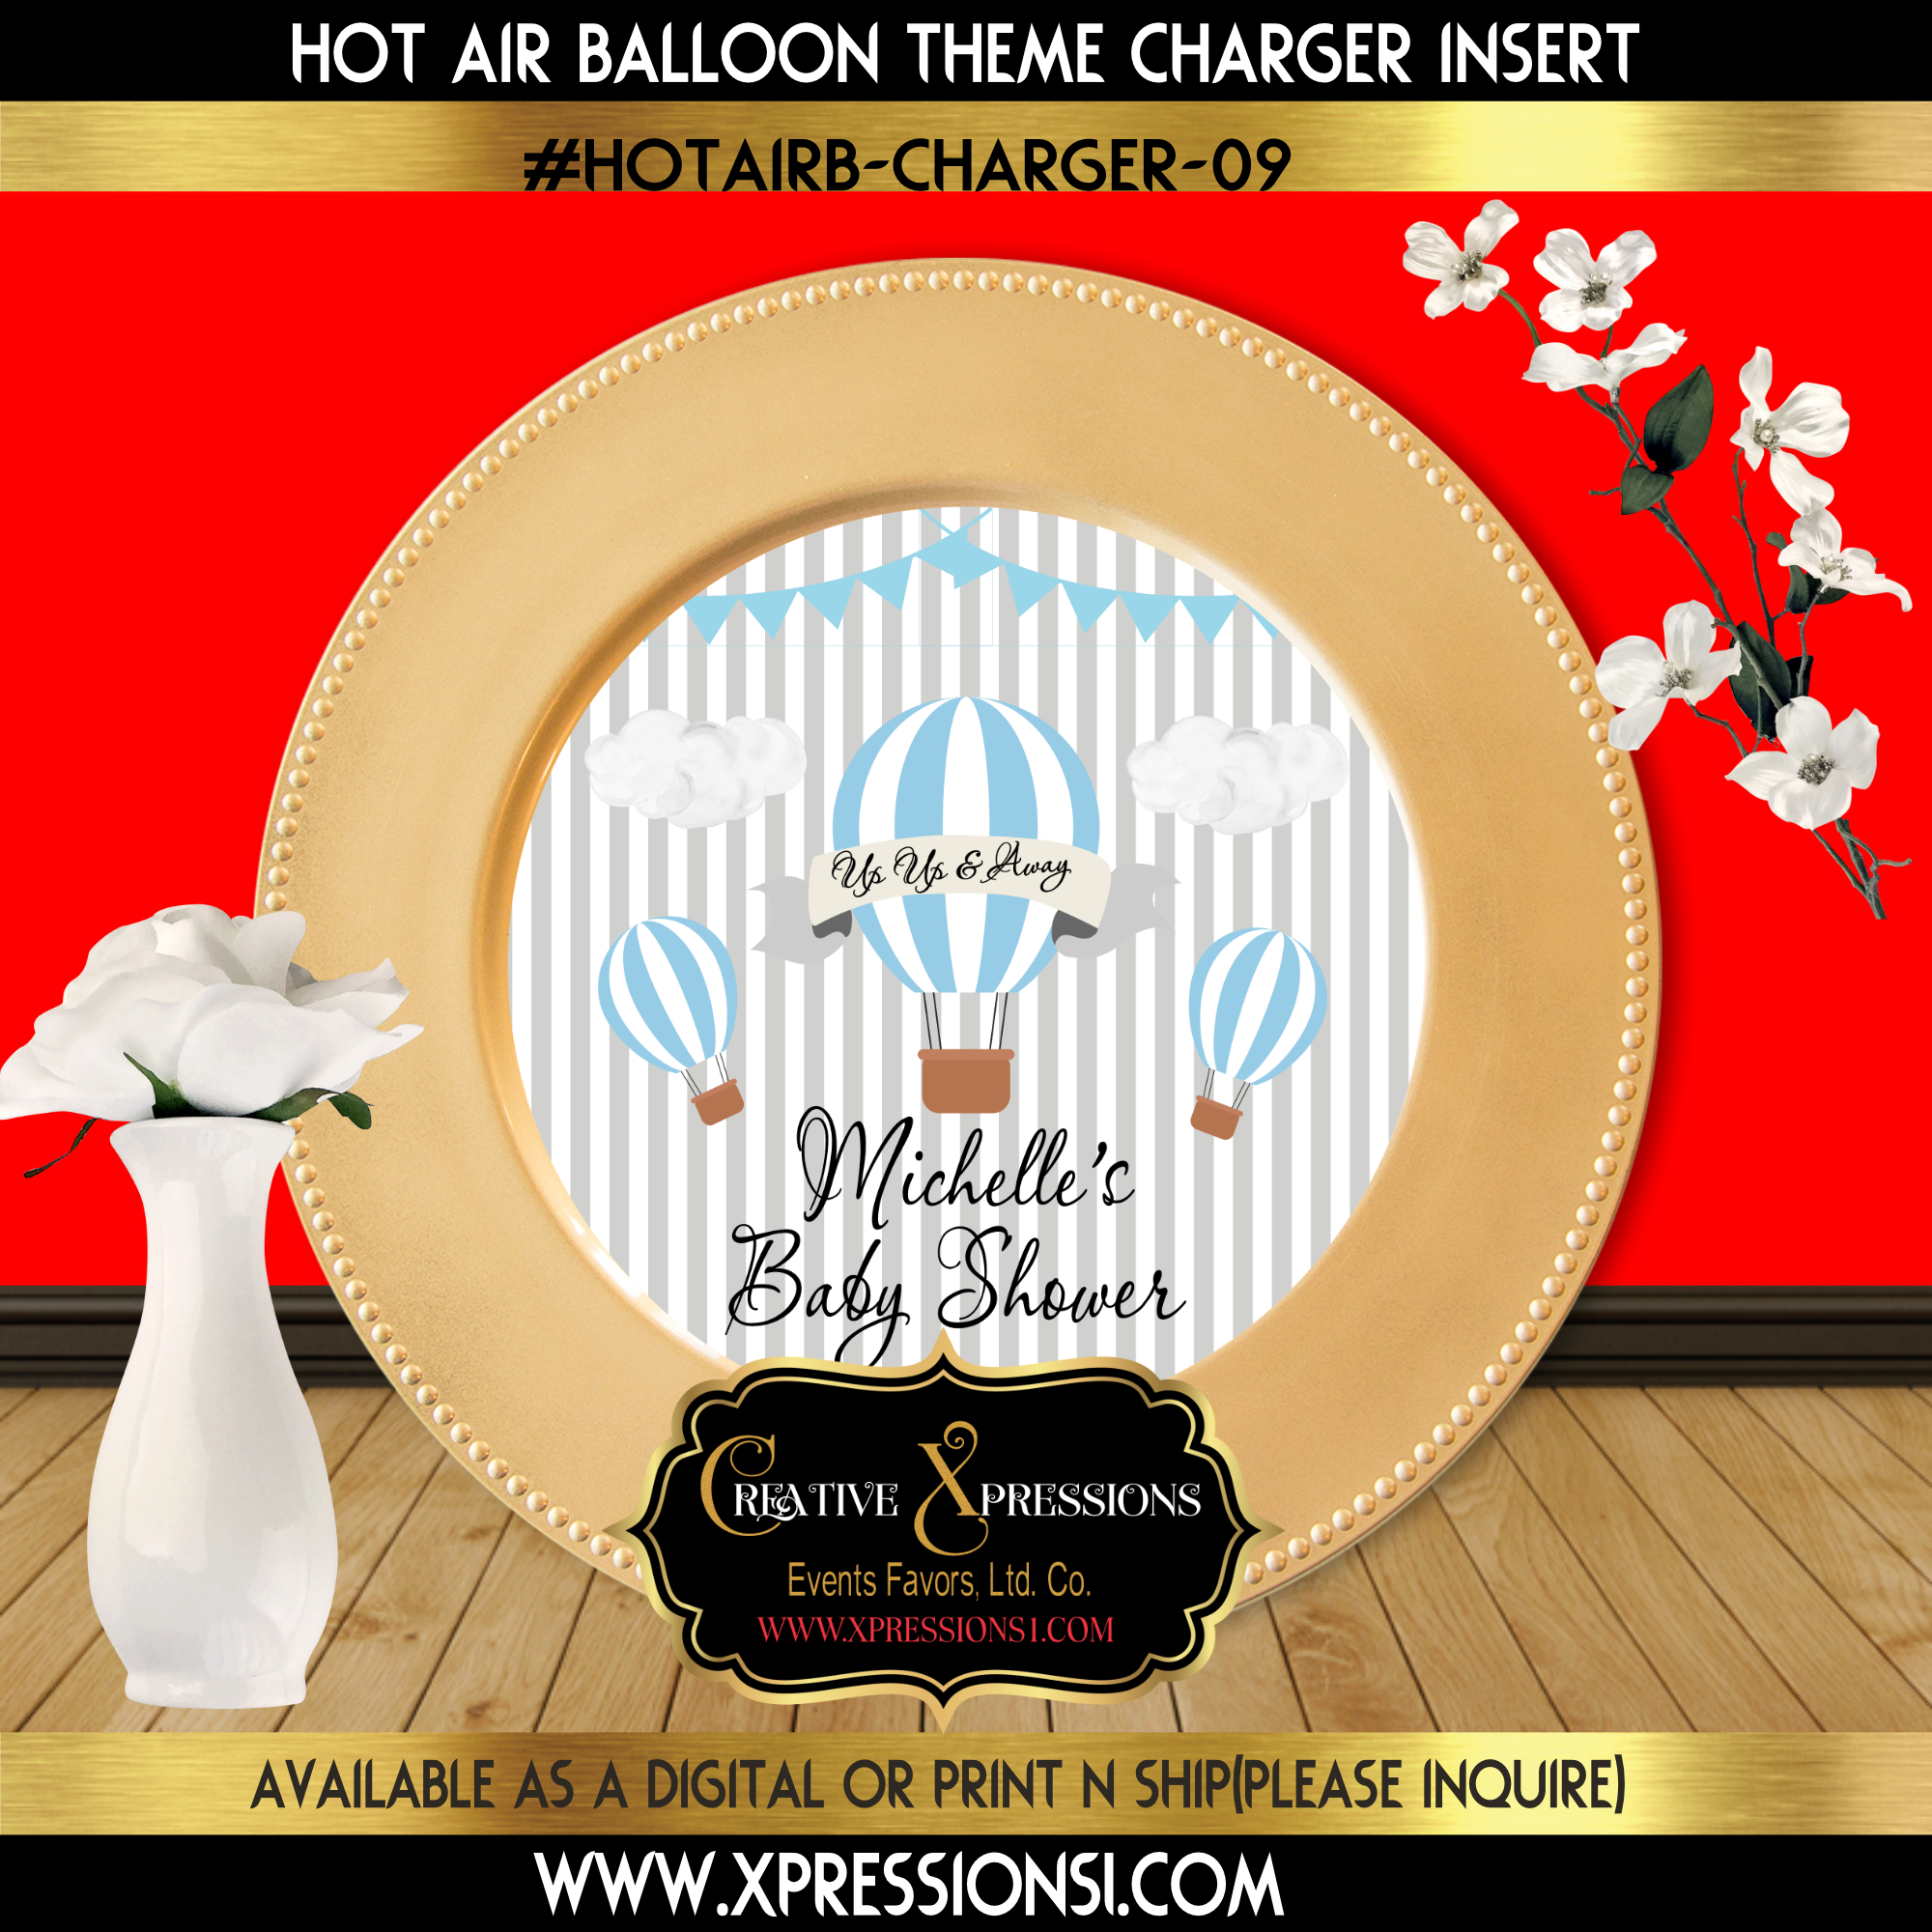 Hot Air Balloon Charger Insert